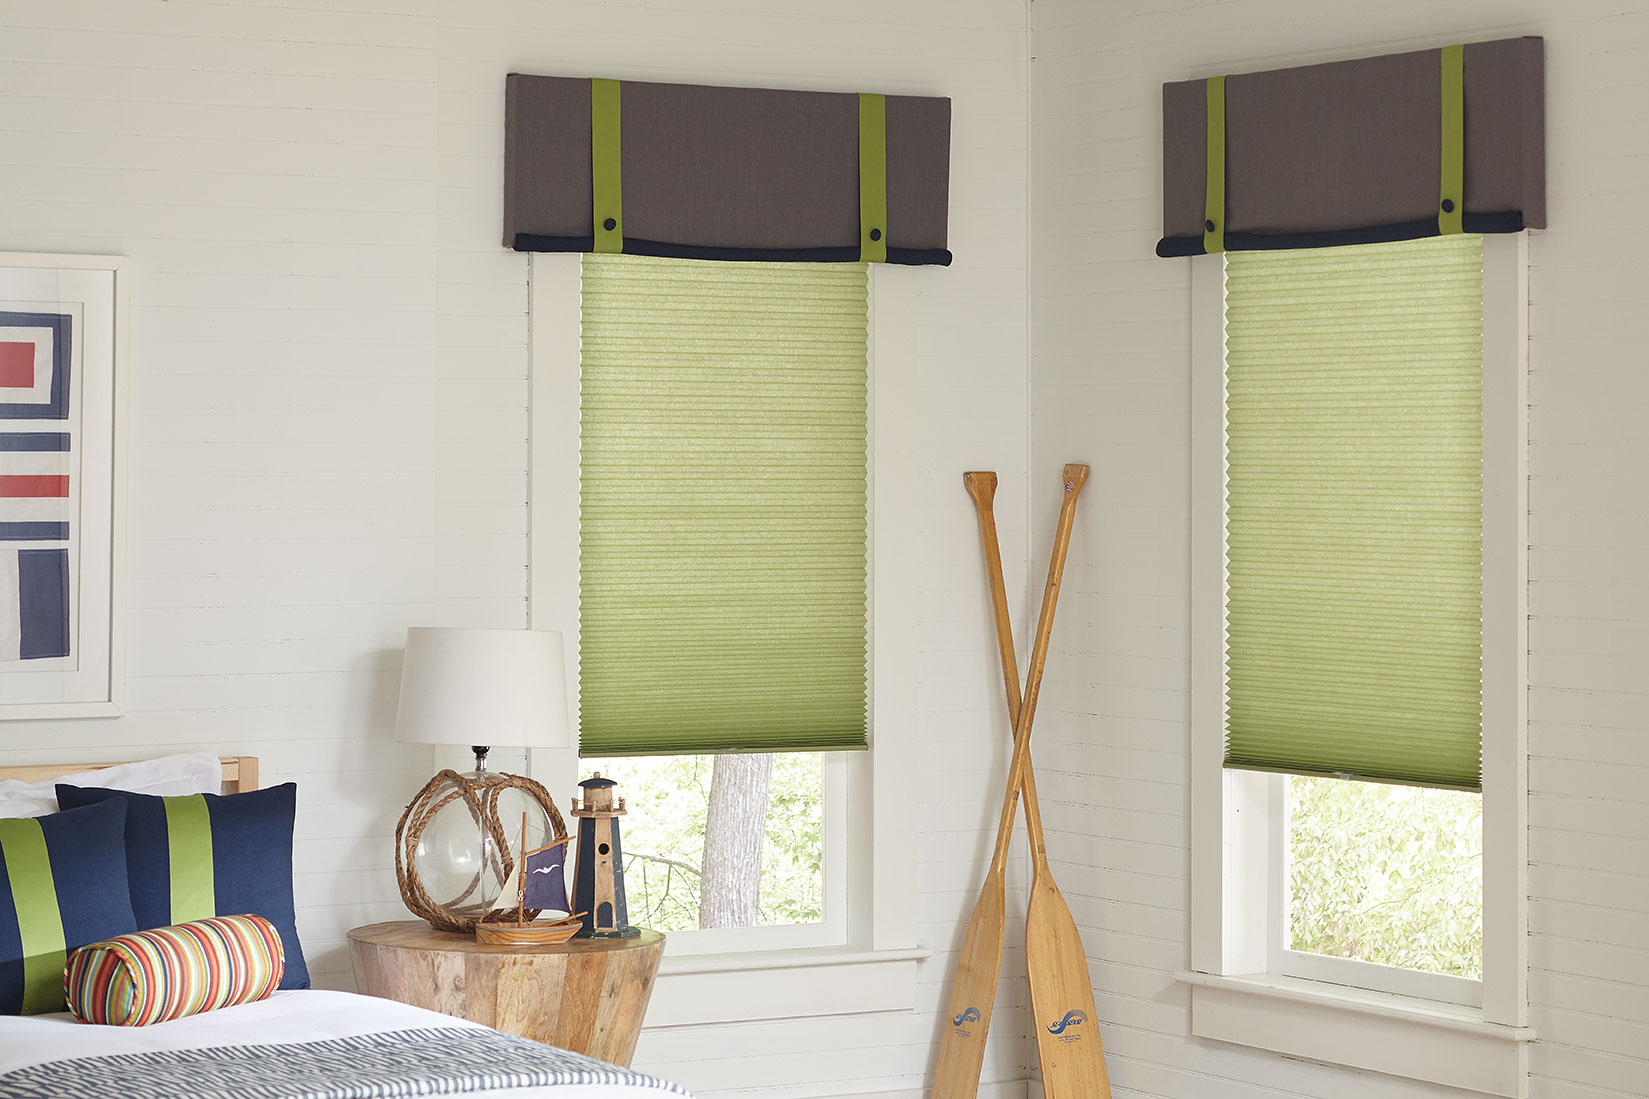 Light, grassy green cellular shades hang in the two corner windows of a child's bedroom featuring nautical accessories, custom matching valances in gray and pillows in navy with green accents.